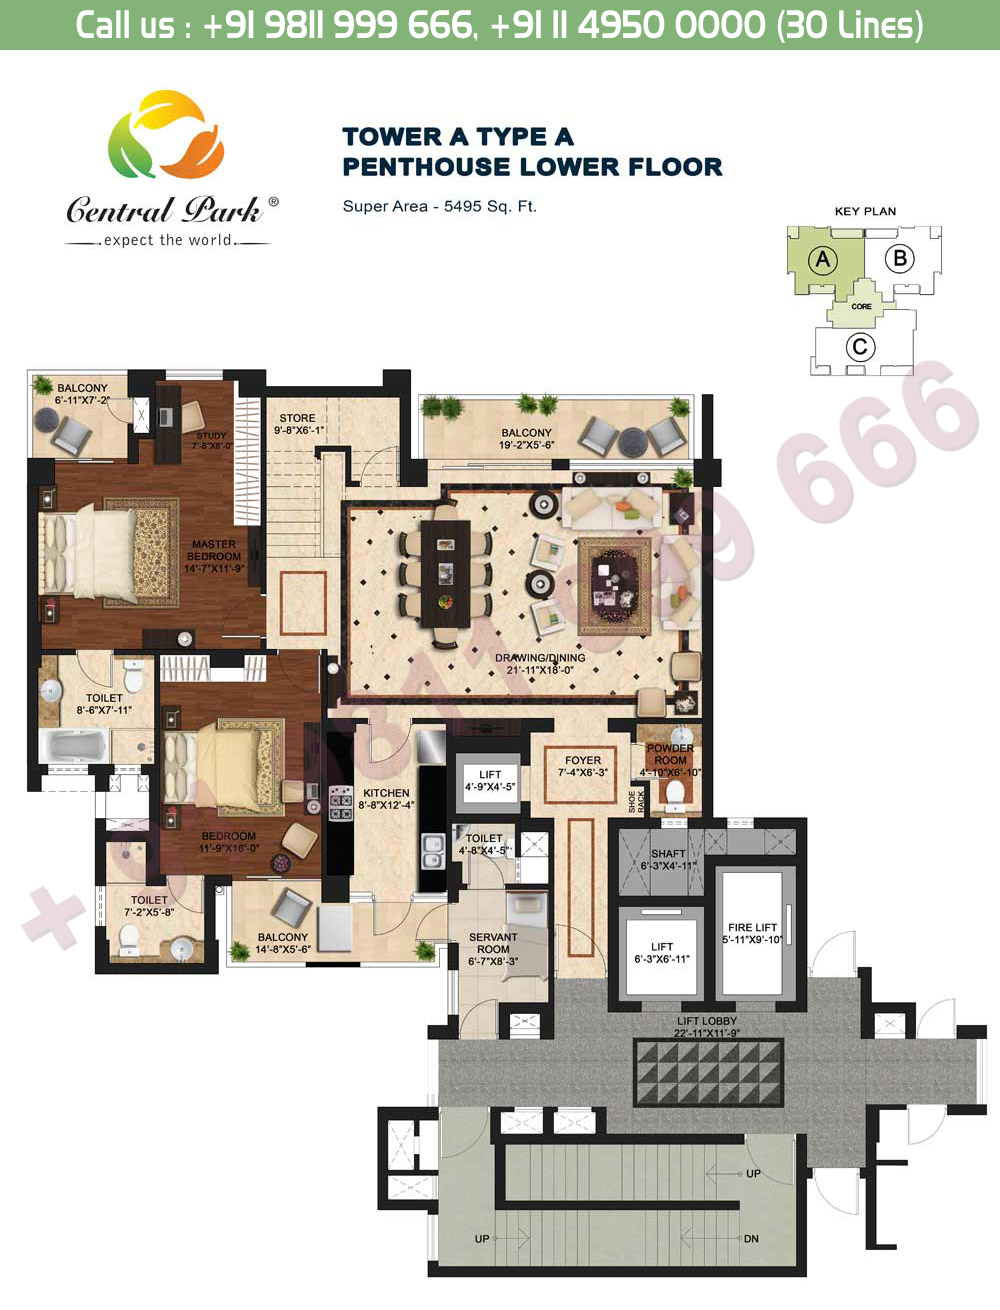 Tower - A, Type - A, Penthouse Lower Floor:  5495 Sq. Ft